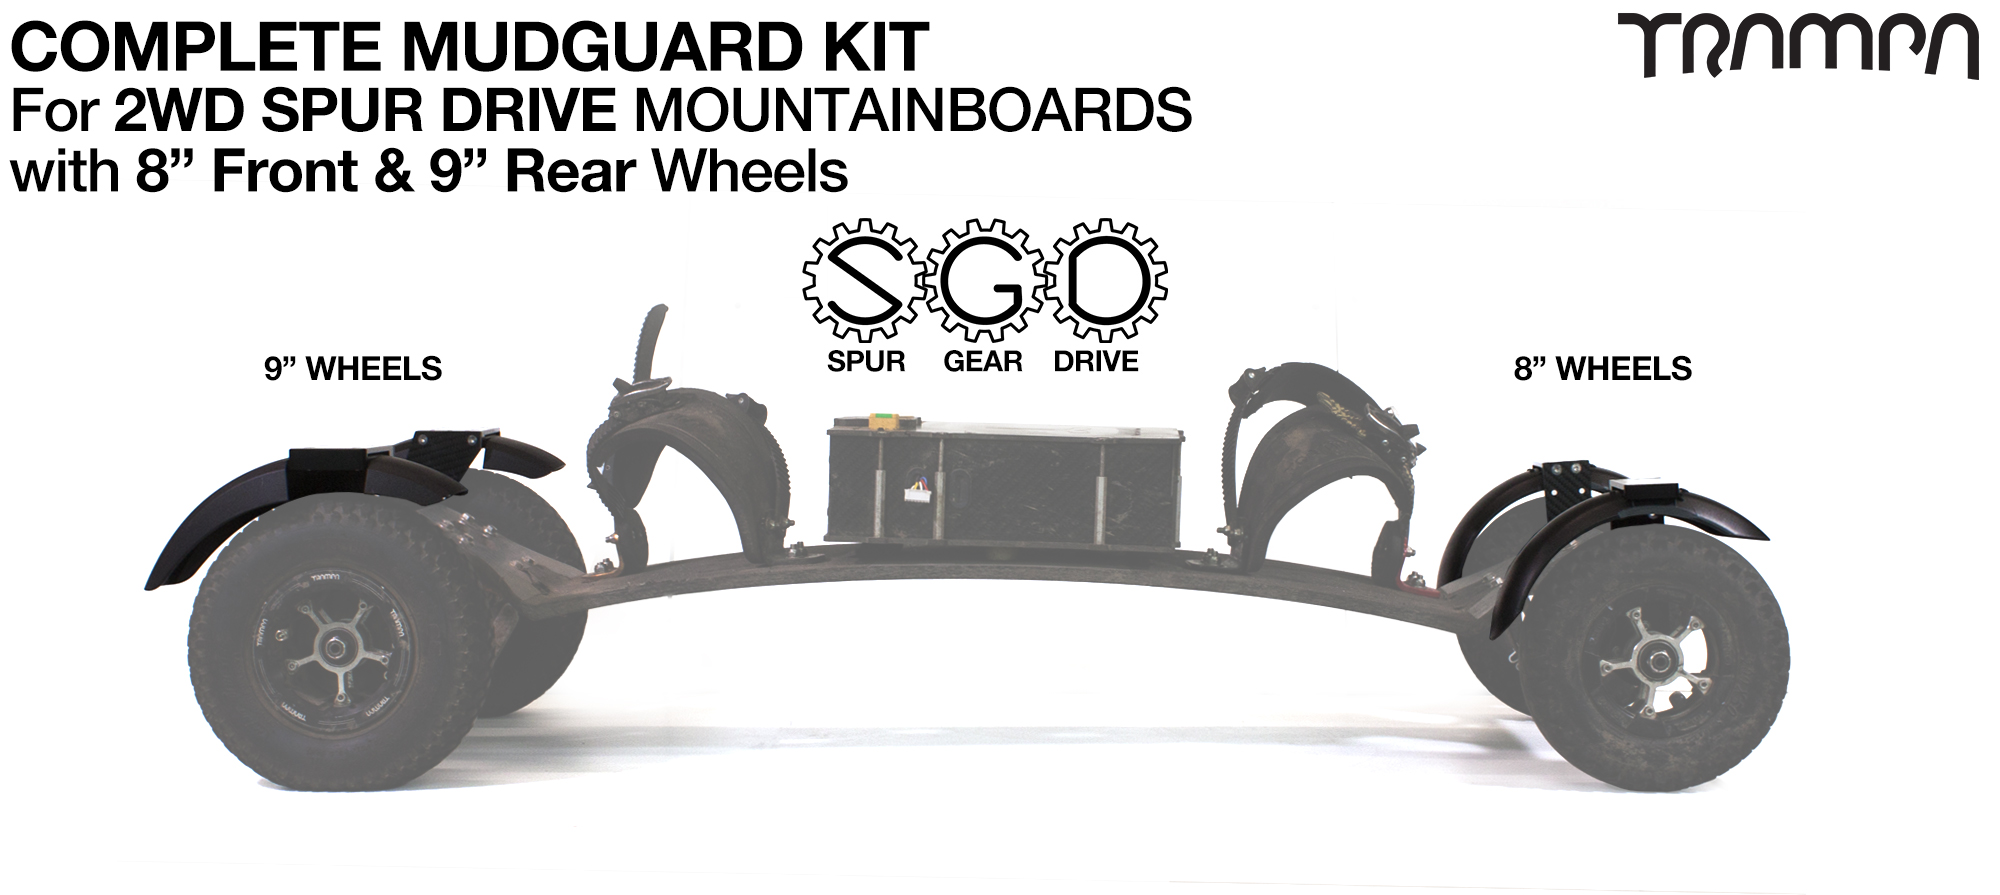 "Full Mudguard Kit for 2WD SPUR GEAR DRIVE Mountainboards - 8"" & 9"" Wheels"